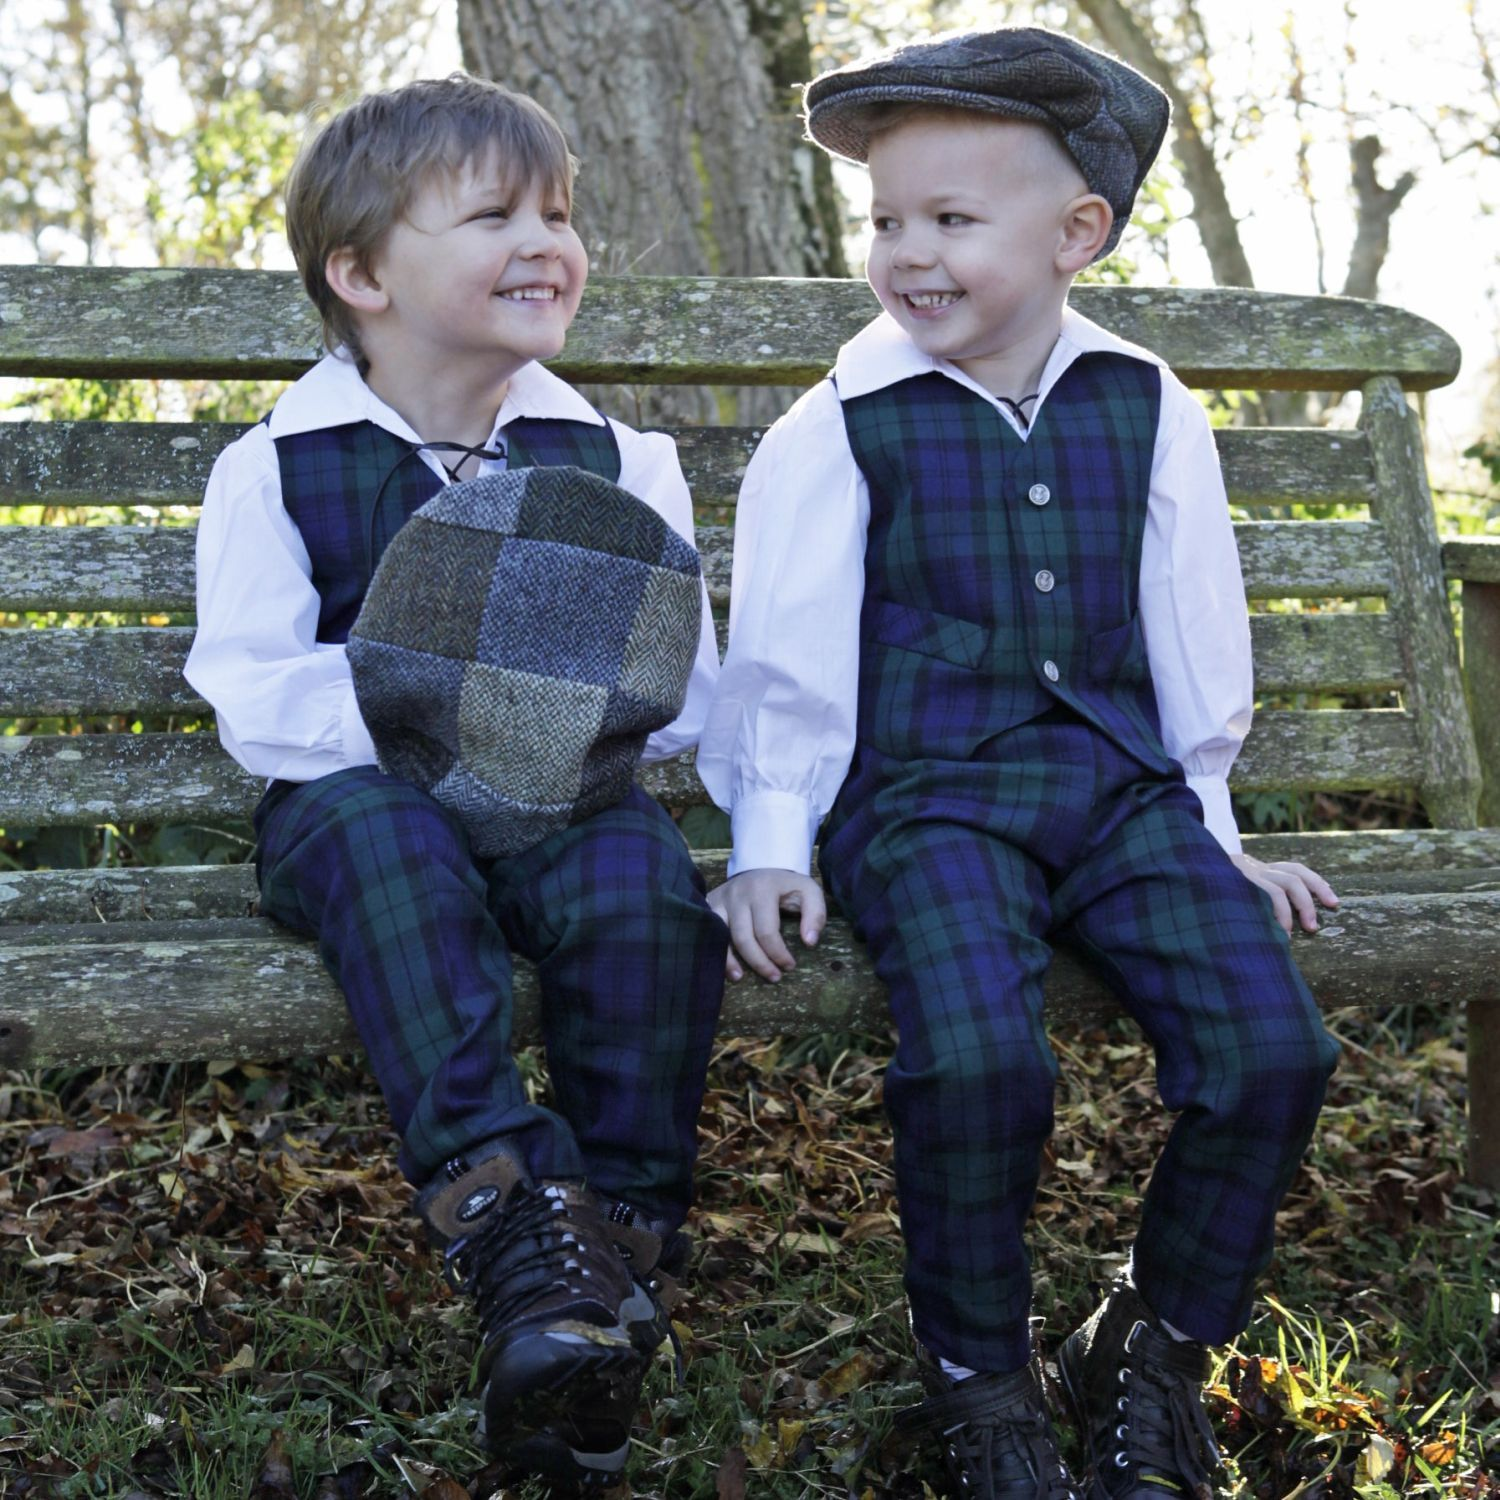 Children's Tartan Clothing - Made in the UK